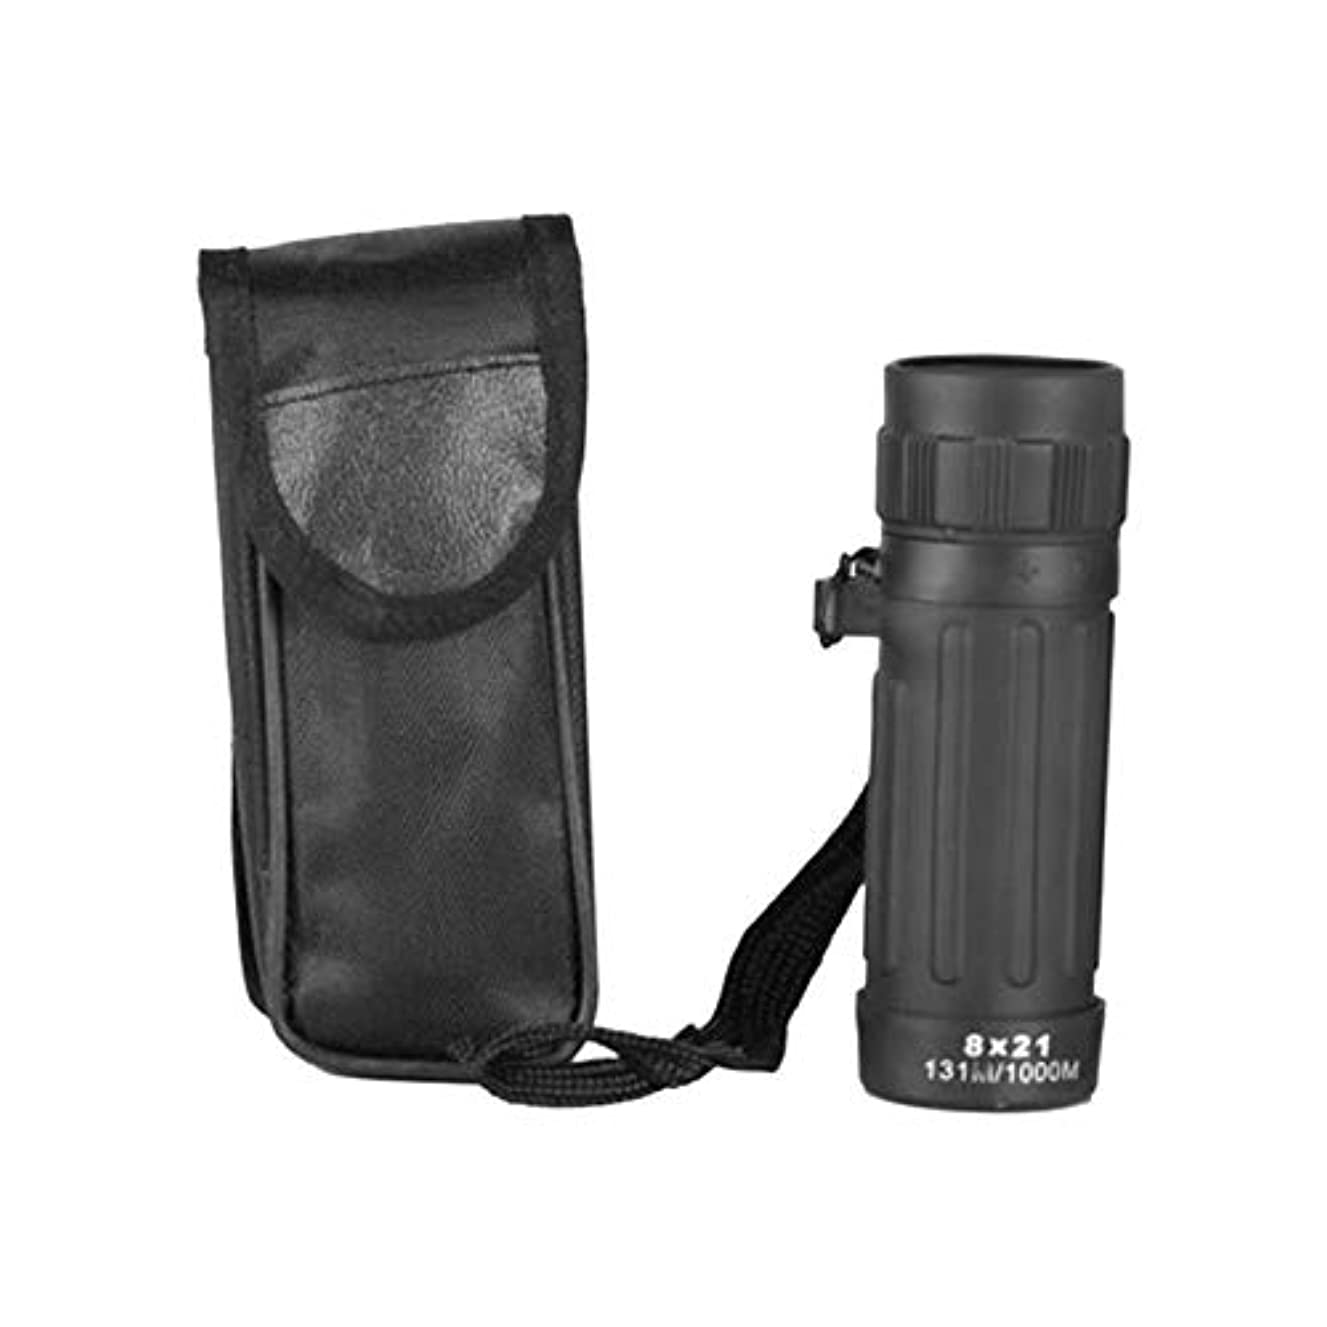 8 x 21 Compact Adjustable Focus Monocular Telescopes with Bag for Sport